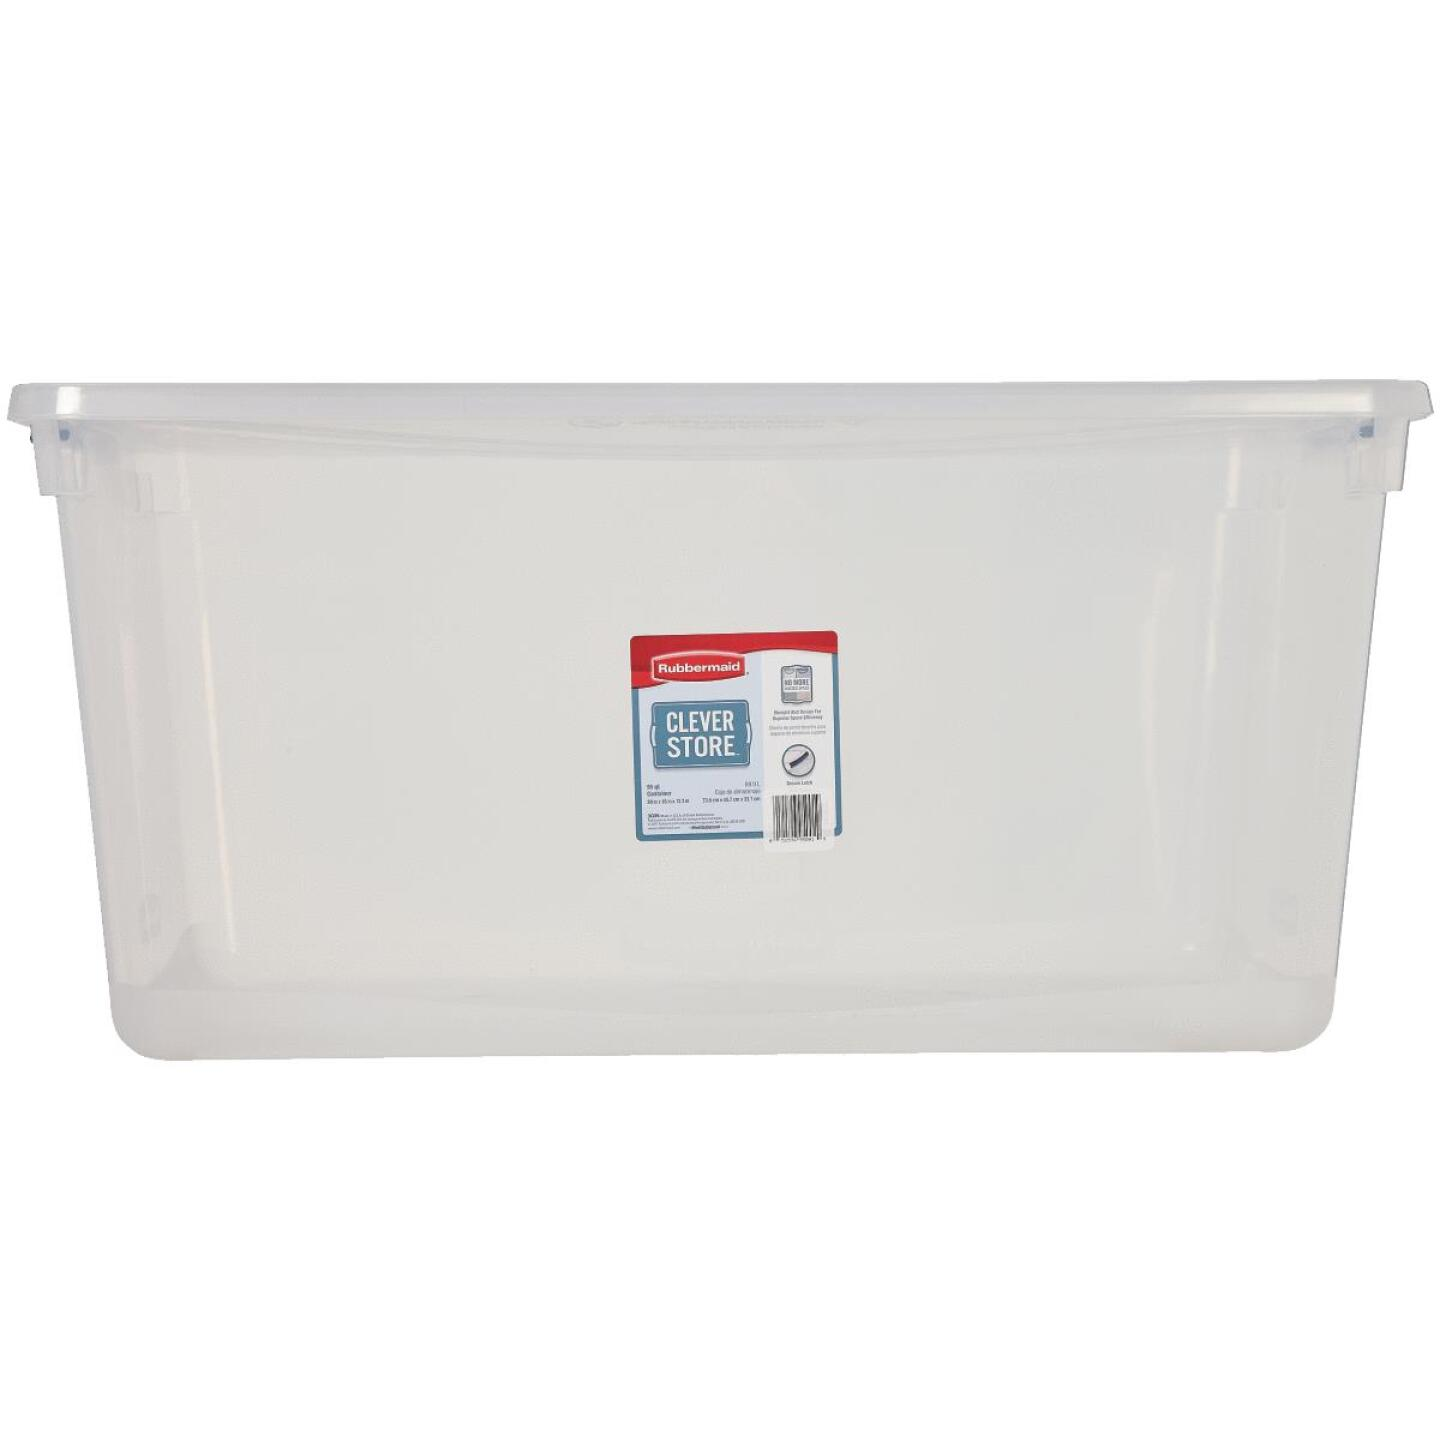 Rubbermaid 95 Qt. Clear Clever Store Latching Lid Storage Tote Image 2